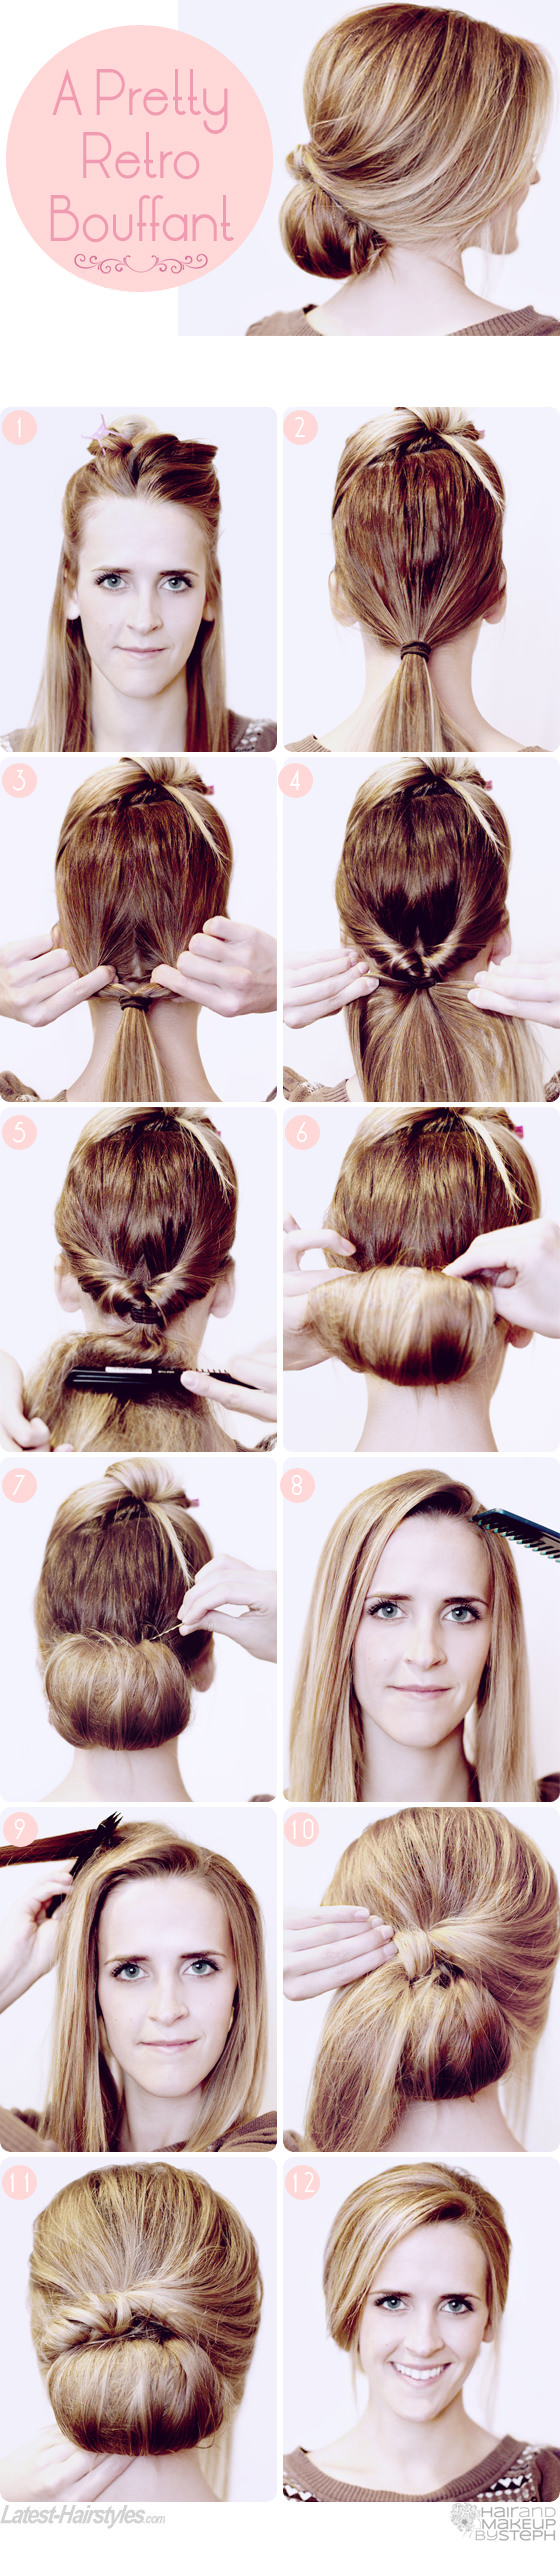 retro bouffant hair tutorial